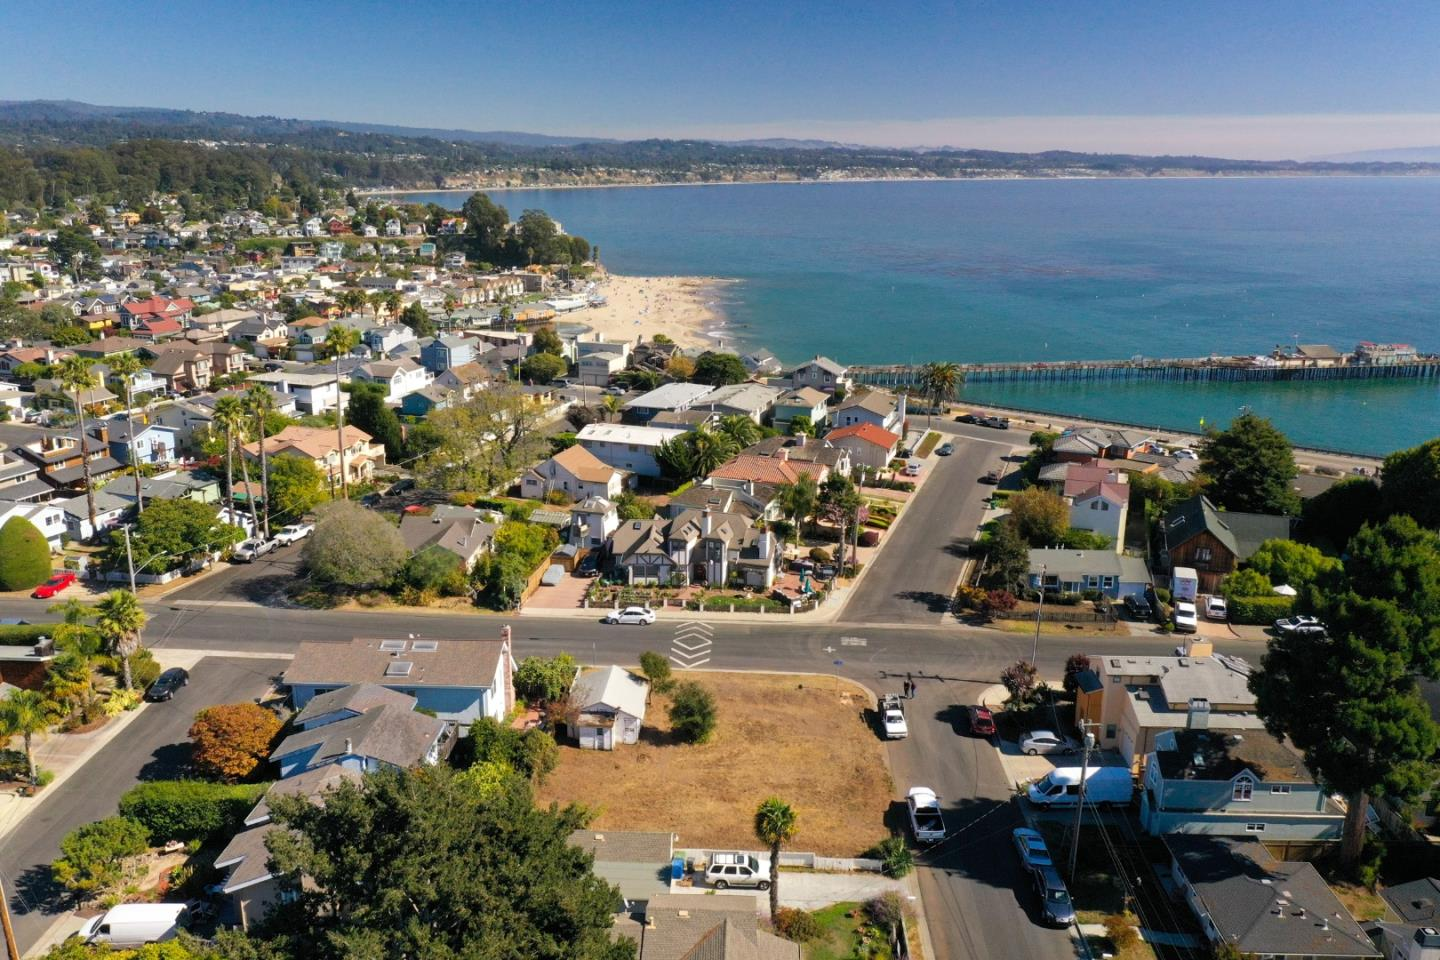 Rare ocean view lot in Capitola! Come build your dream home on this corner lot located in the Capitola Jewel Box. City of Capitola says you can build up to approx. 1940 Sq Ft.. Water, power and sewer are onsite. Walk to surf, beach and Capitola village in minutes.  Lot next door at 0 Opal Street ML81817156 is also available for sale.